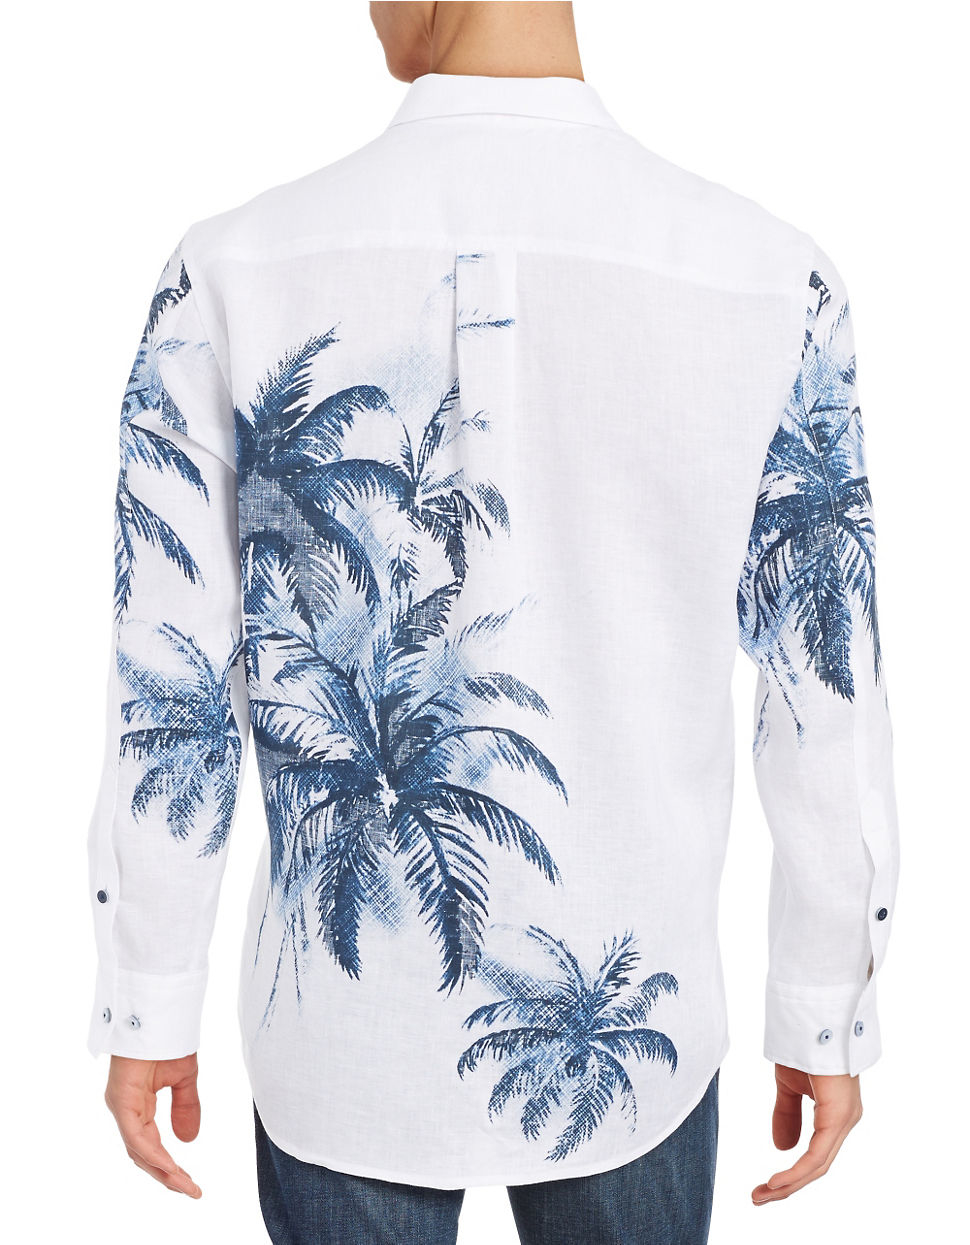 Tommy bahama palm frite linen sportshirt in blue for men for Where to buy tommy bahama shirts